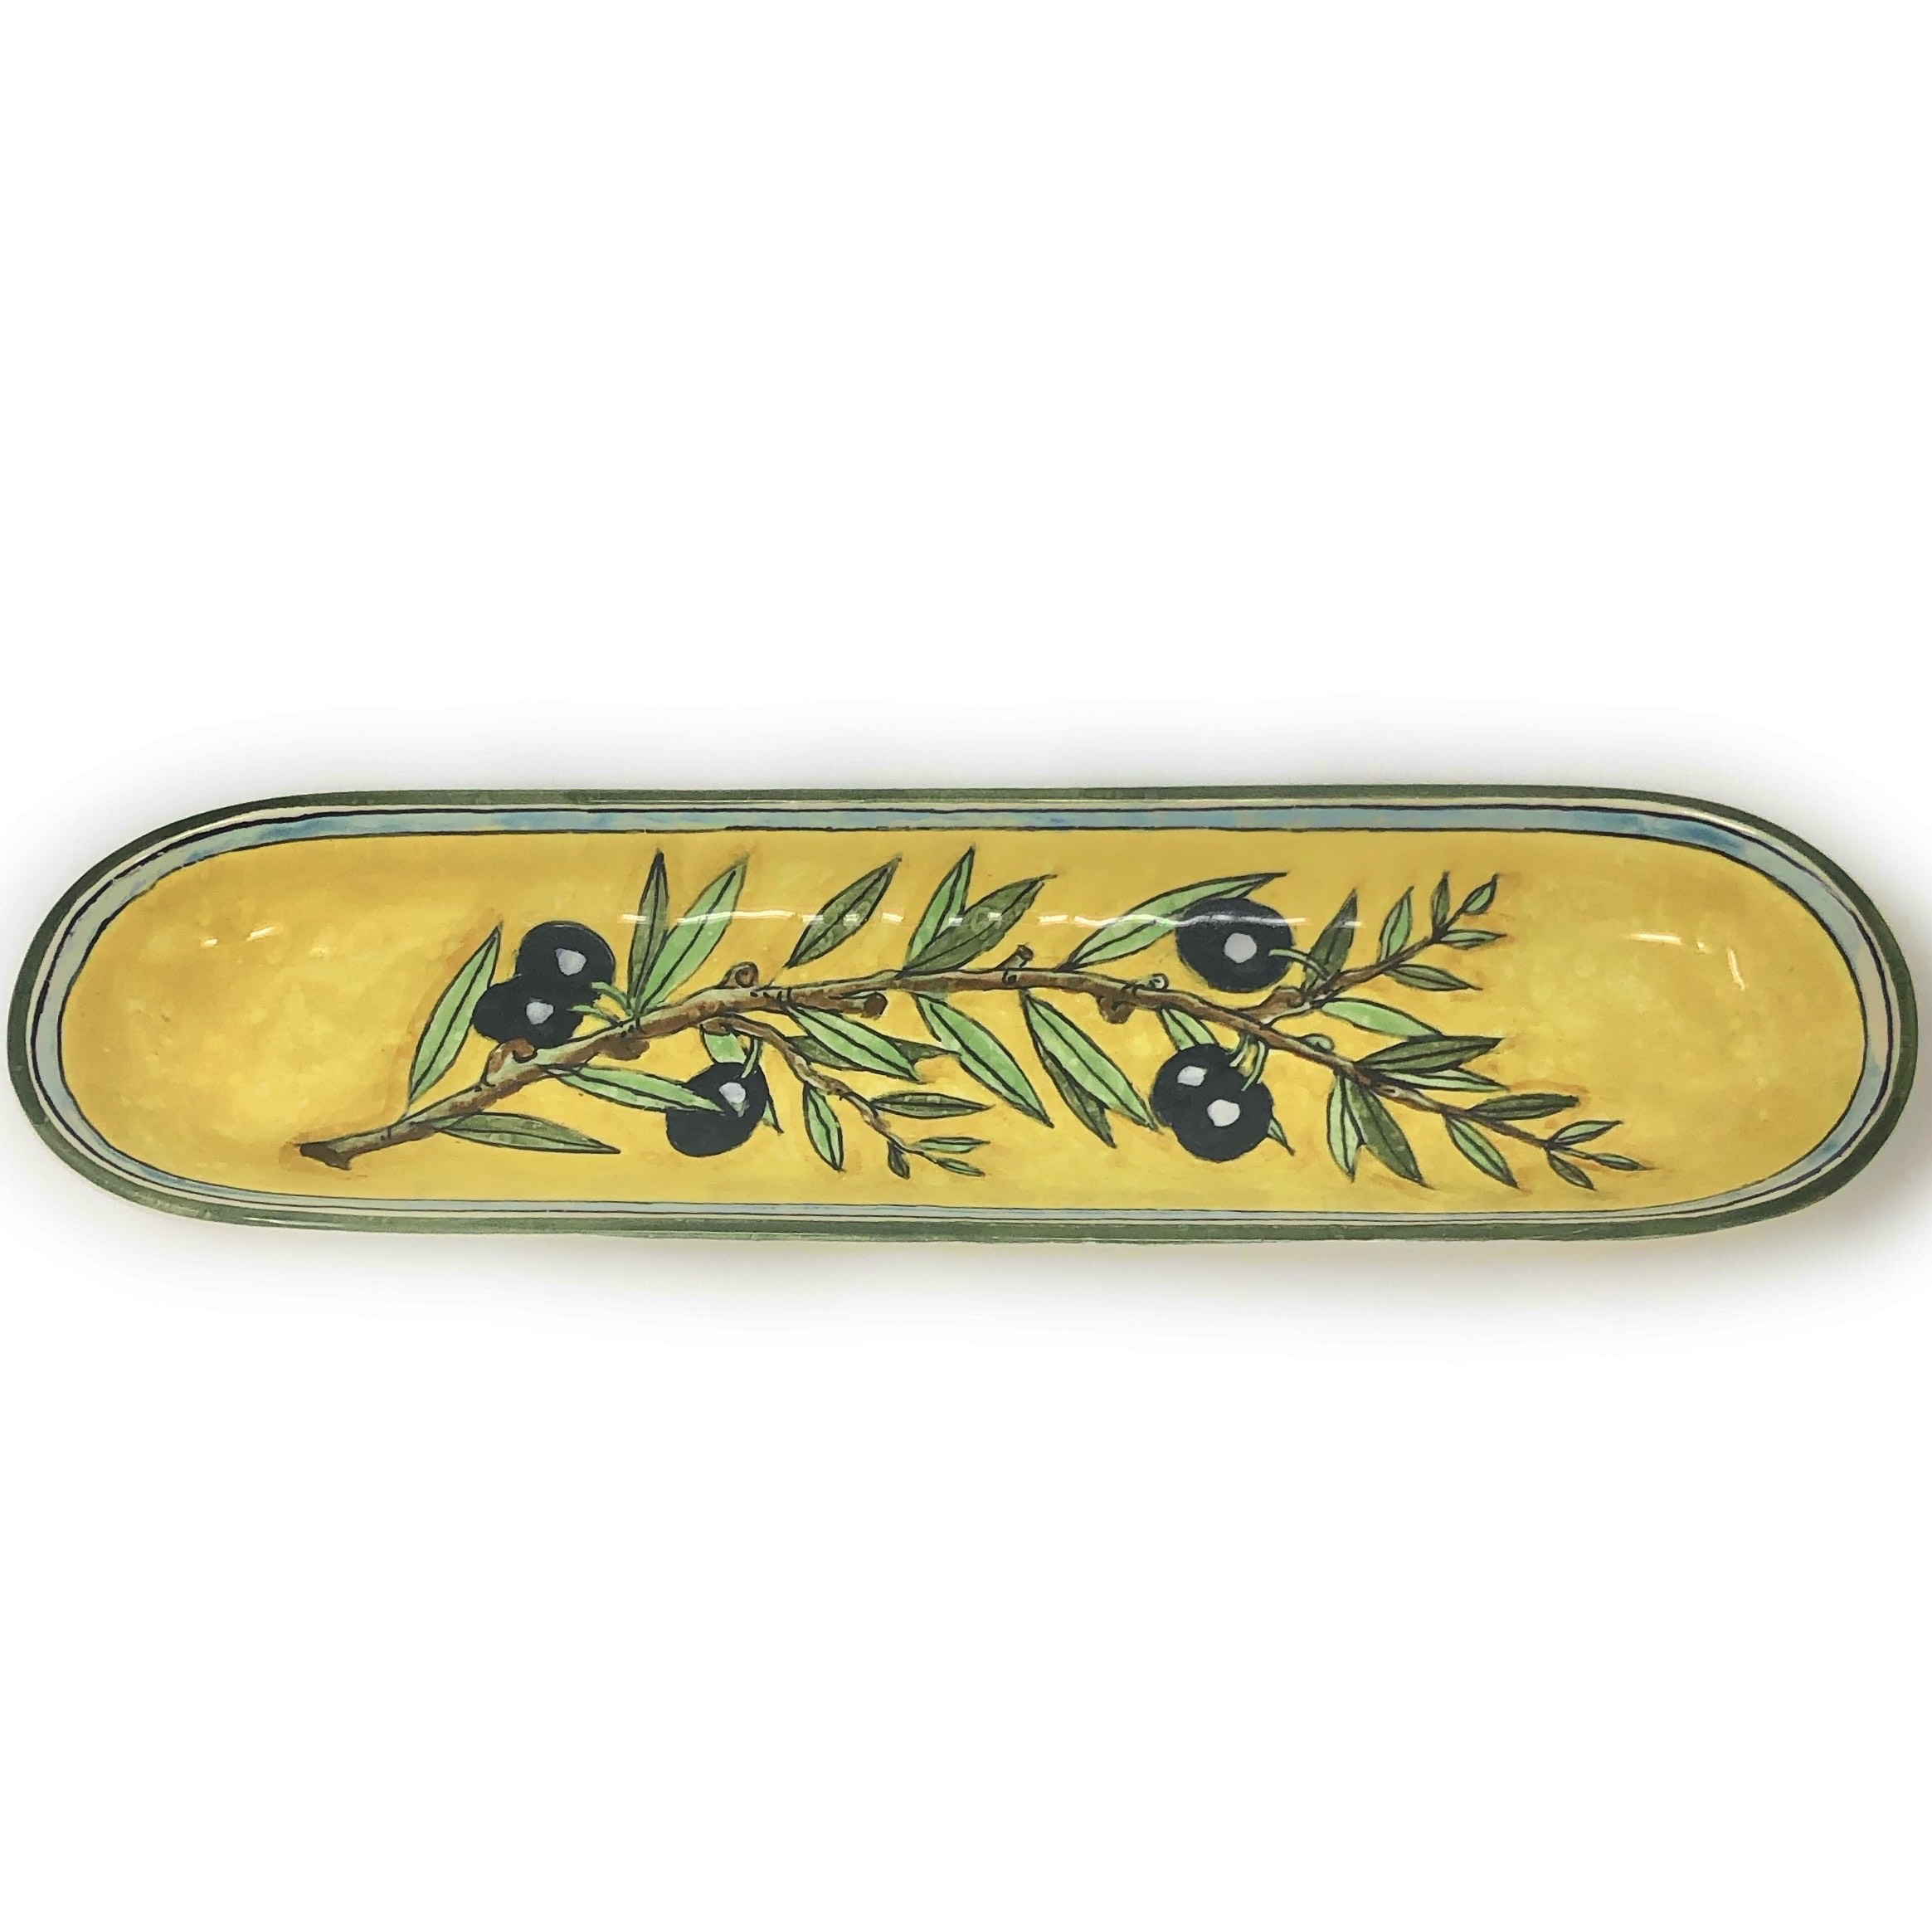 Tray olives yellow background